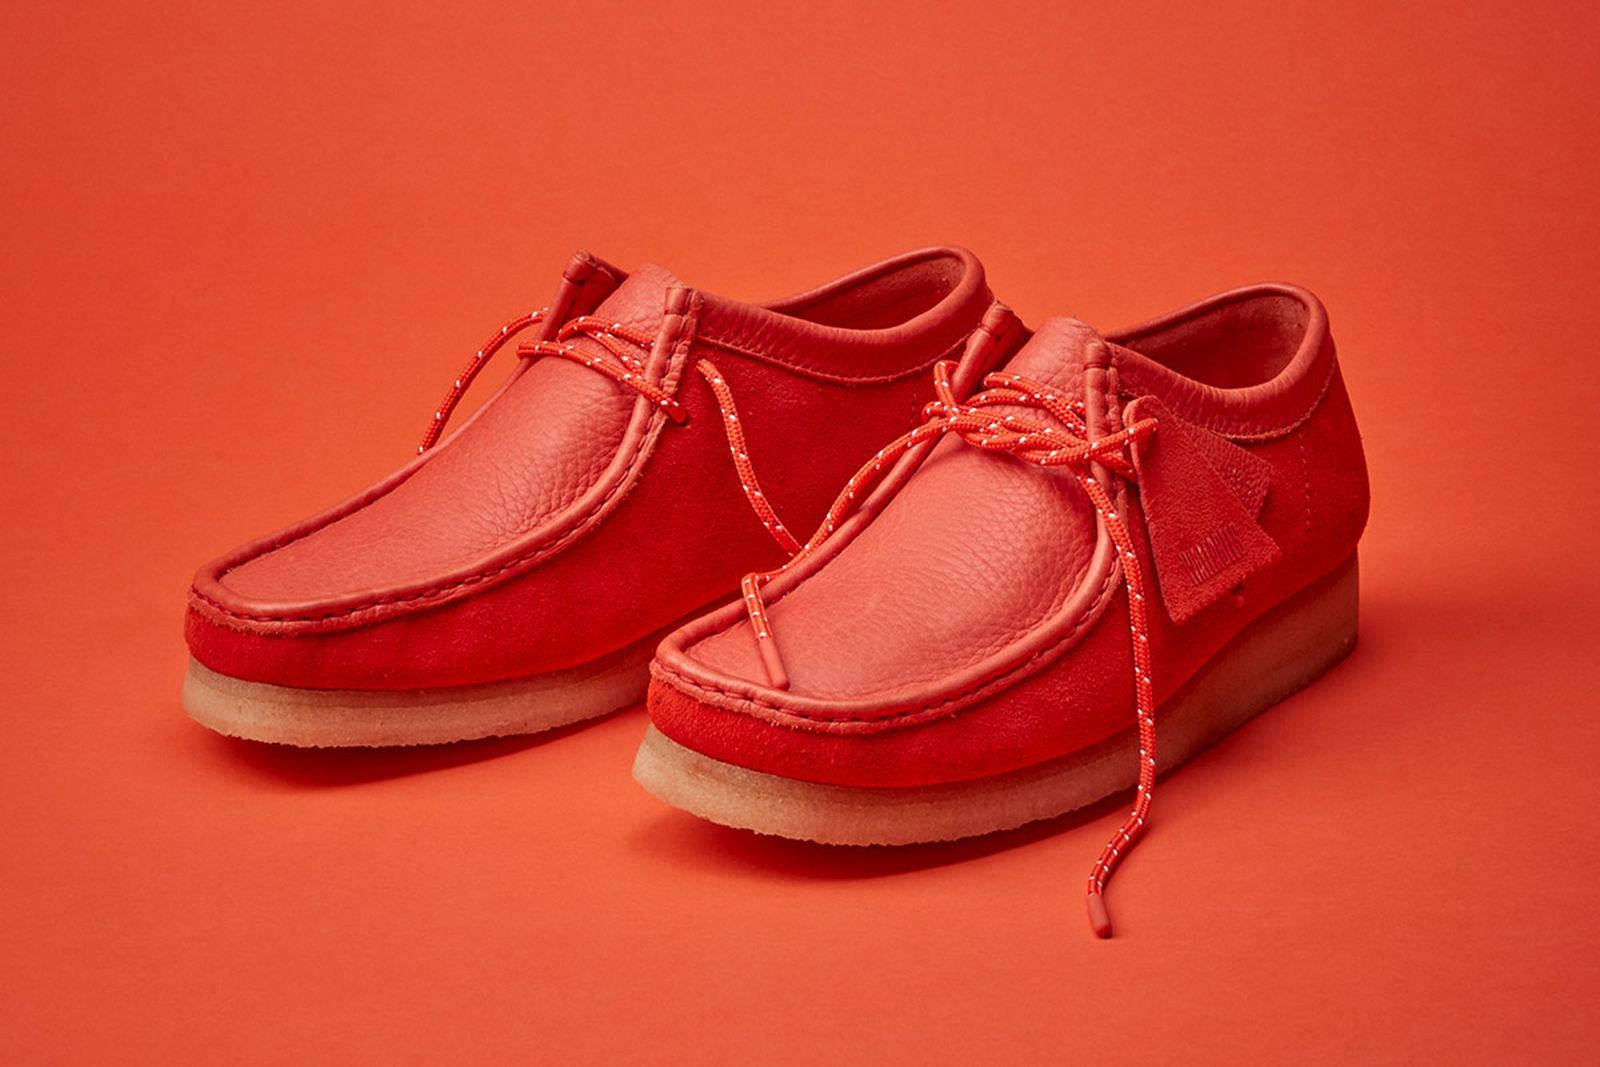 clarks-wallabee-low-red